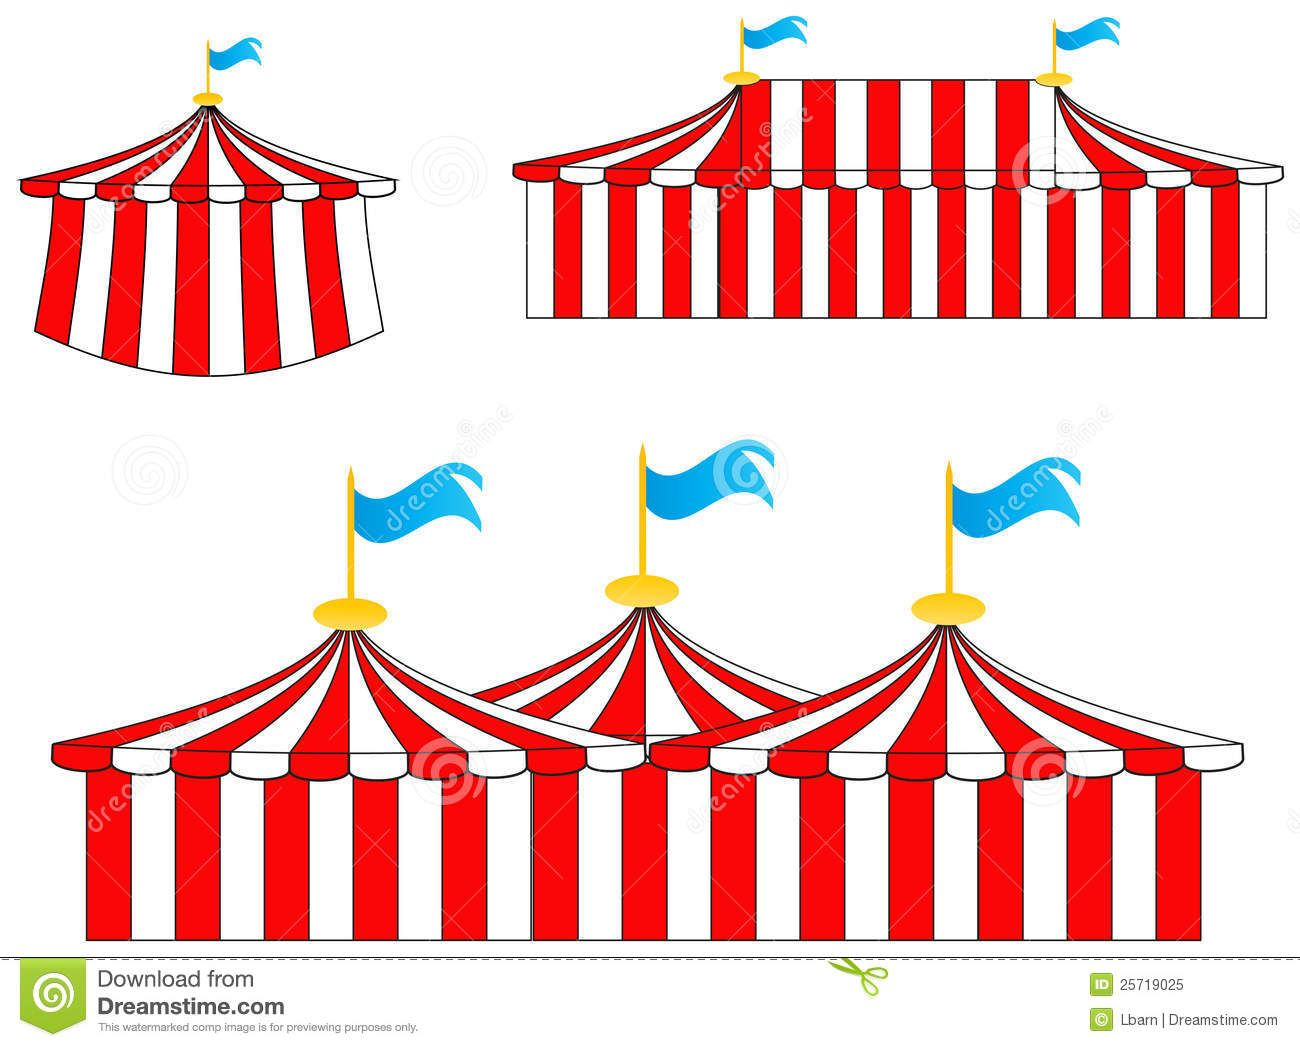 carnival clipart black and white clipart panda free clipart images [ 1300 x 1047 Pixel ]